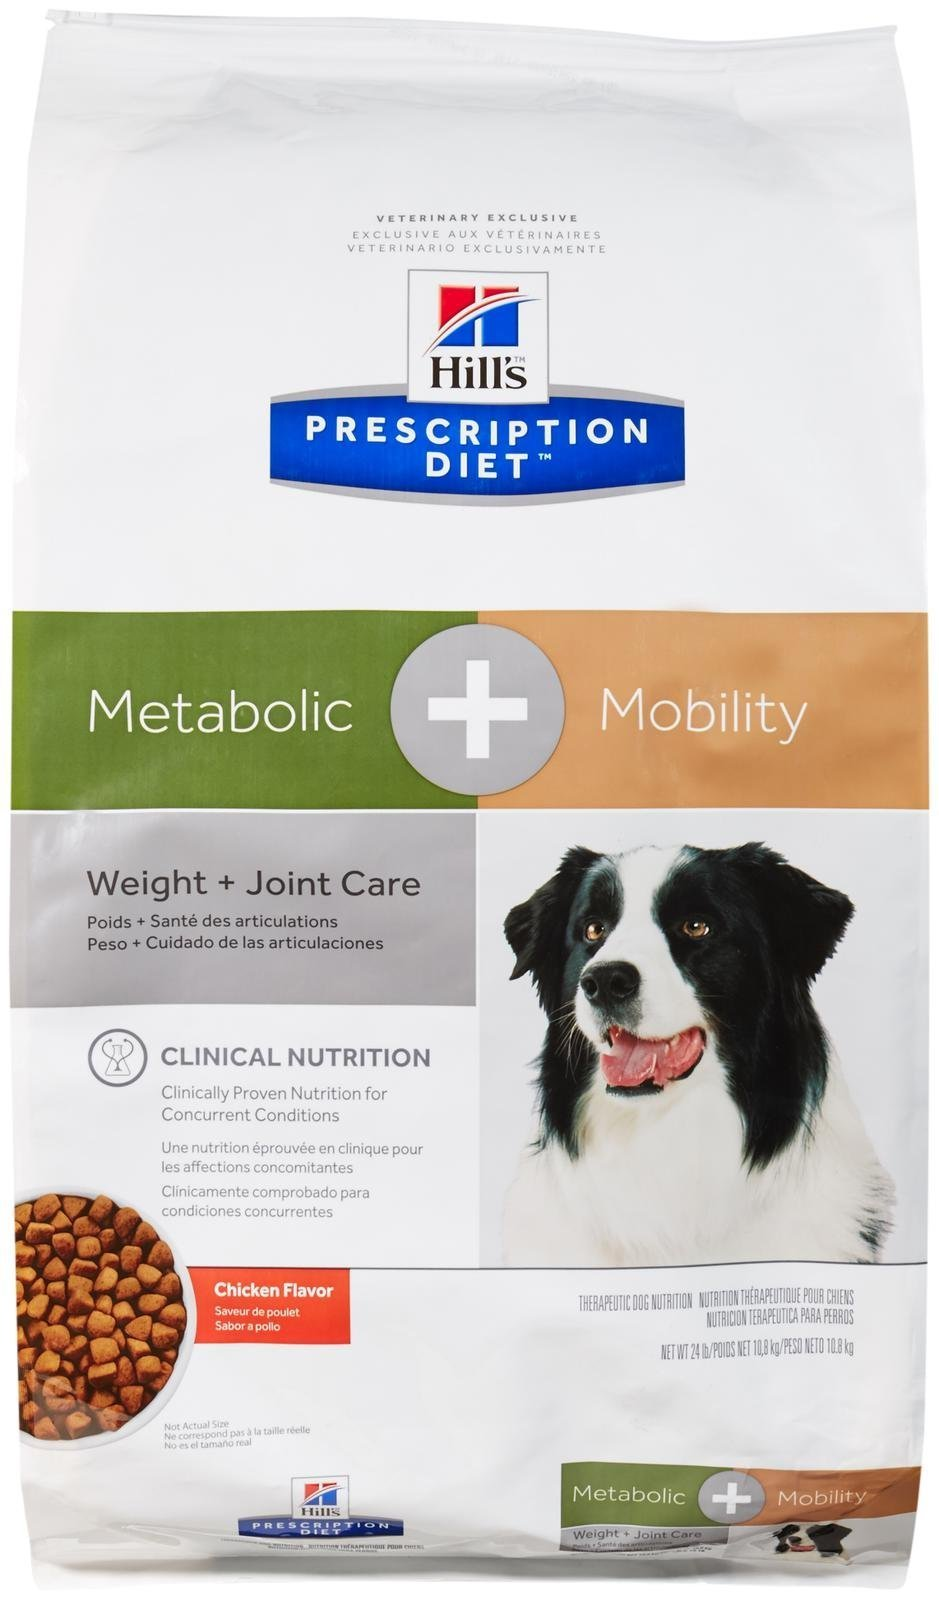 Hill's Prescription Diet Metabolic + Mobility Canine - Chicken Flavor - 24Lbs